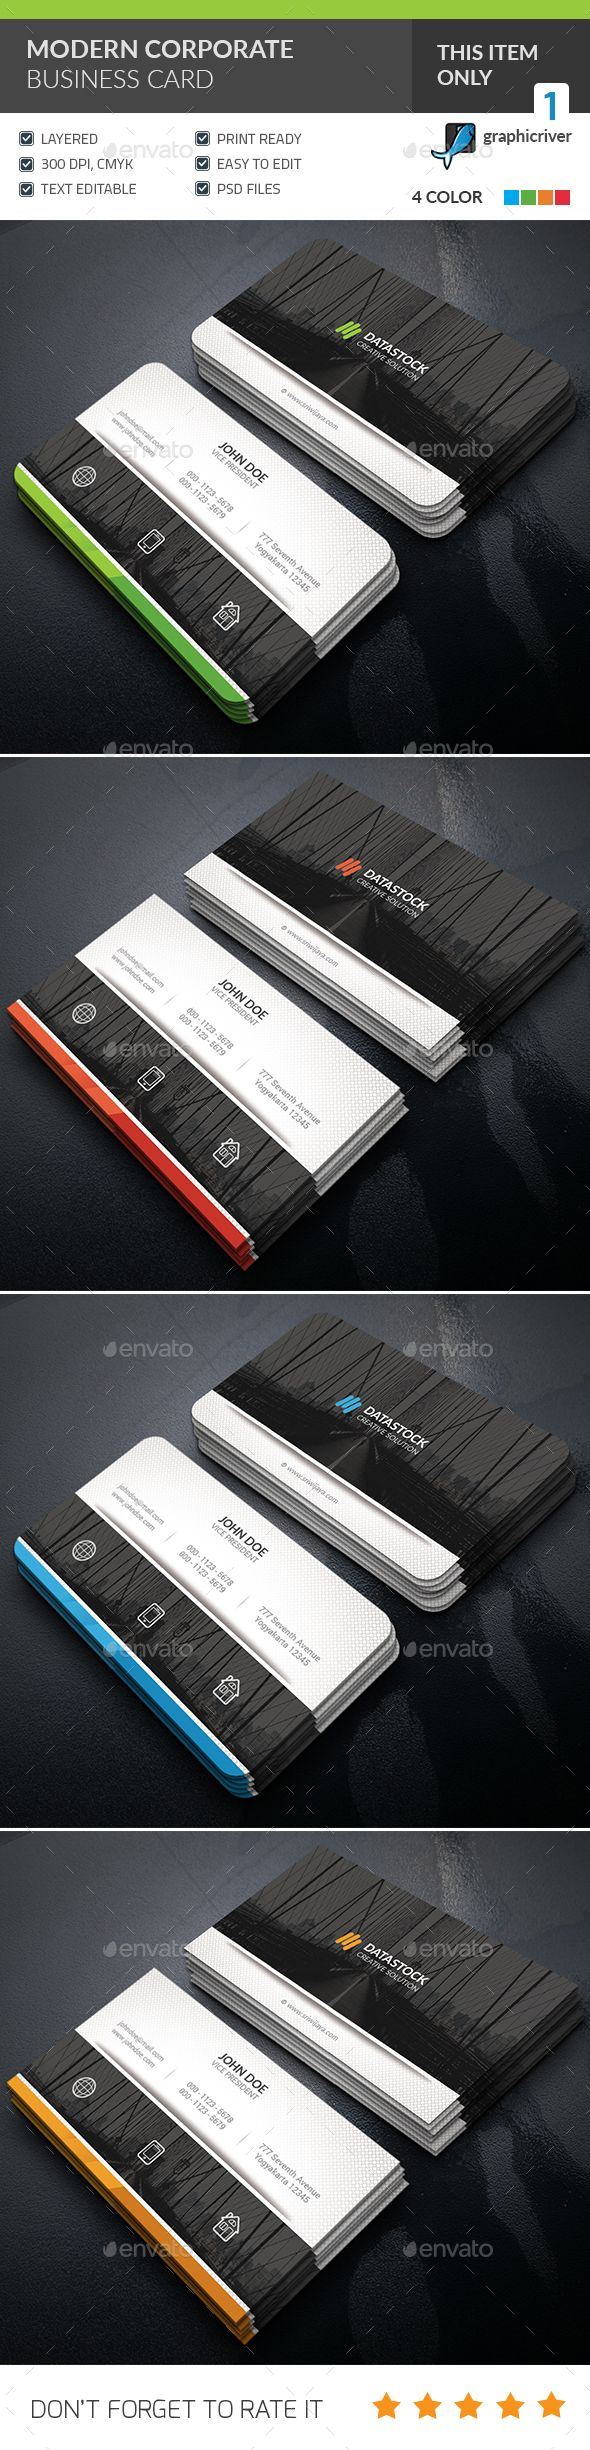 Best 12 Business Cards Images On Pinterest Business Card Design